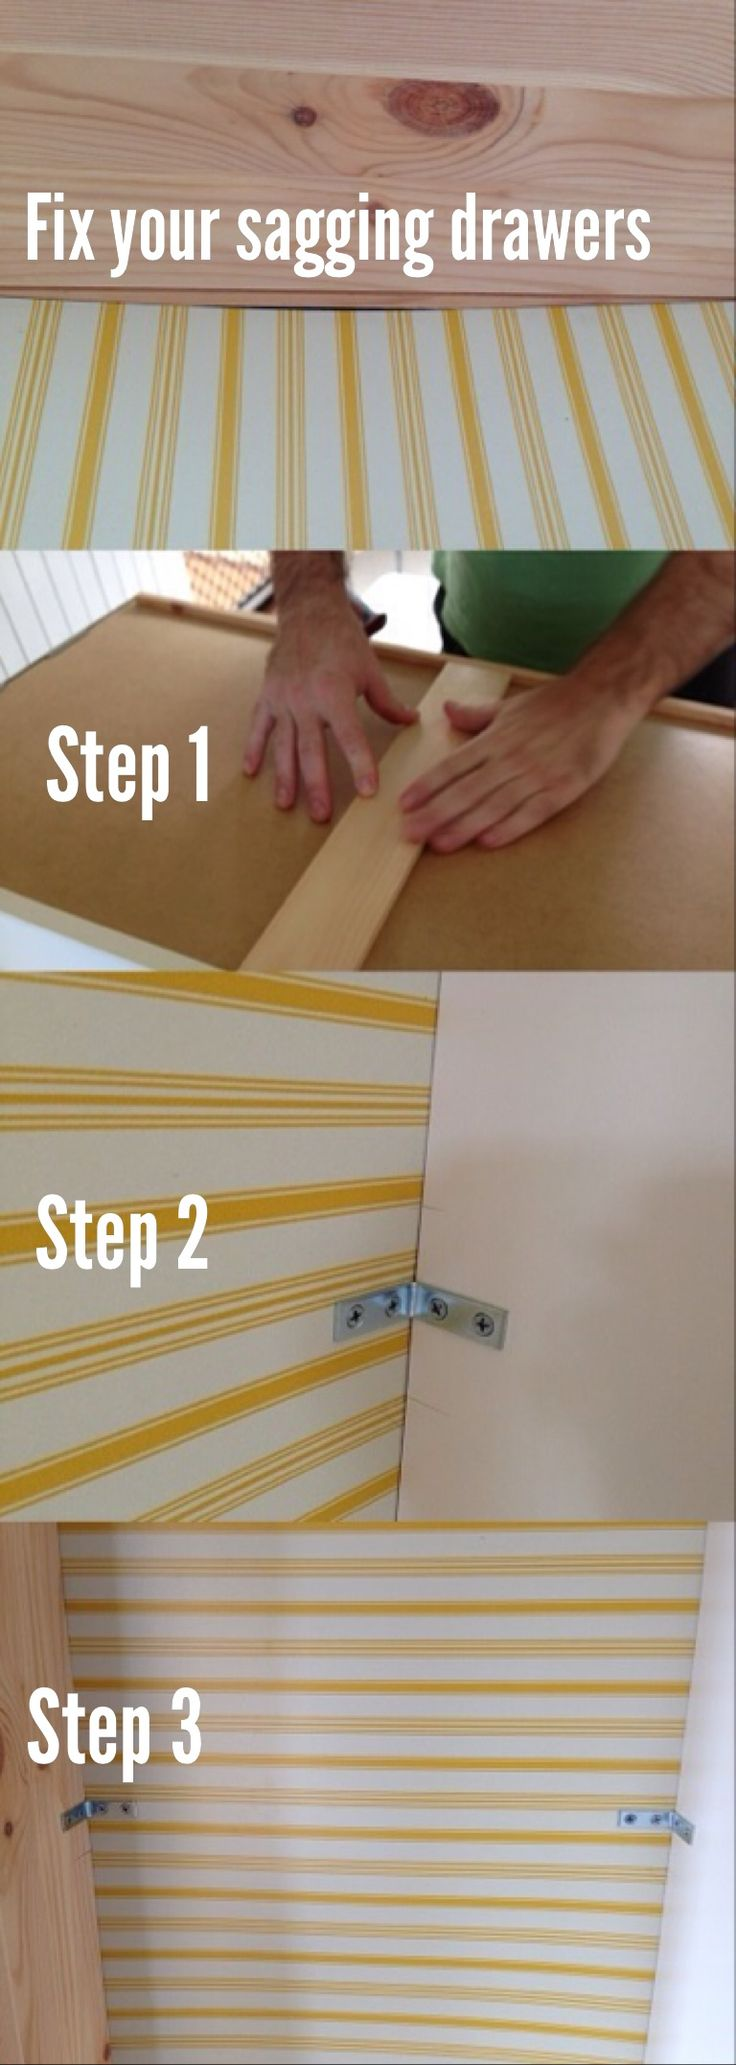 how to fix drawers that sag